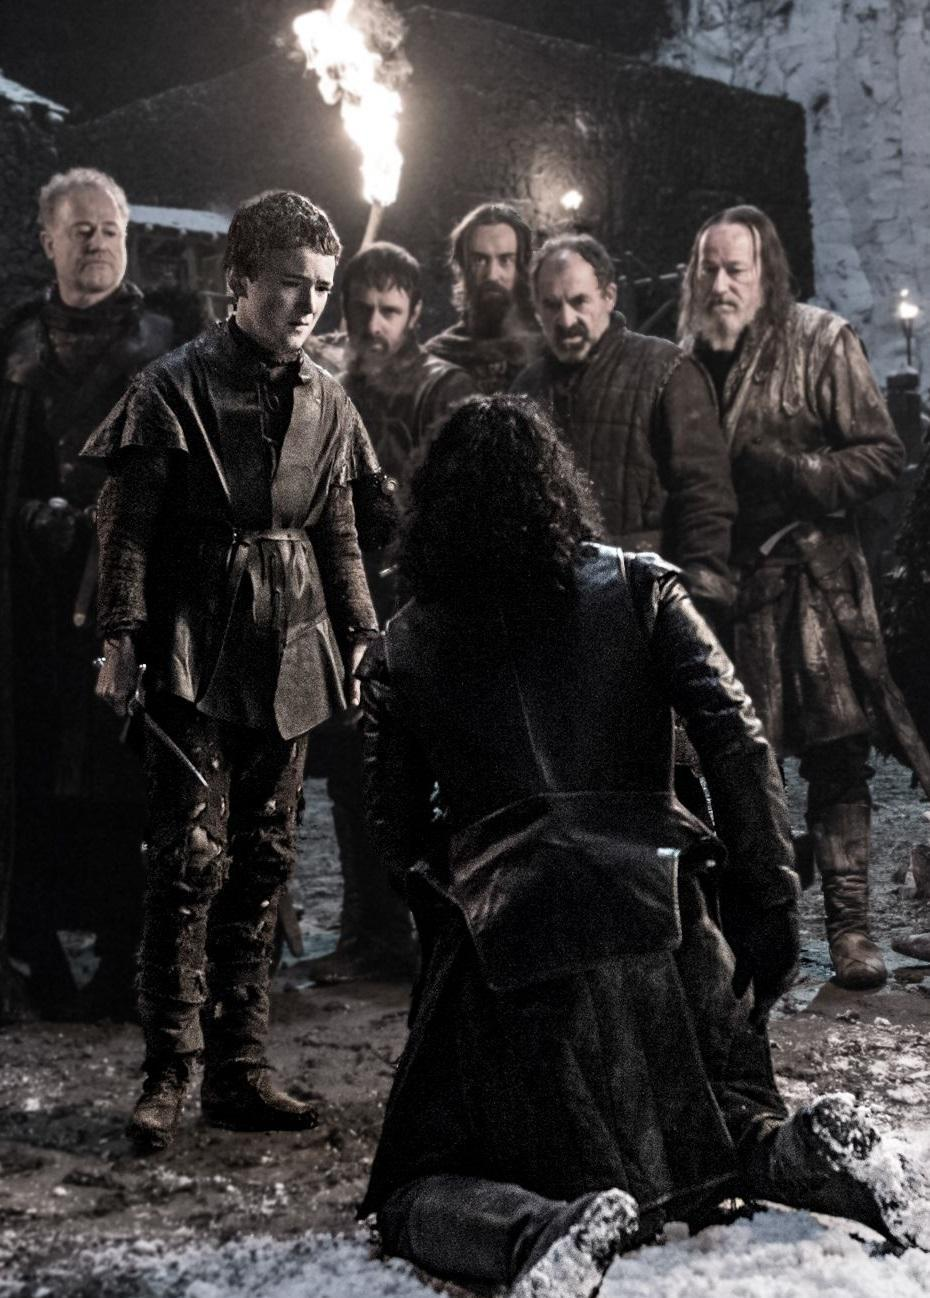 Brian Fortune on Game of Thrones season 6, the Night's Watch